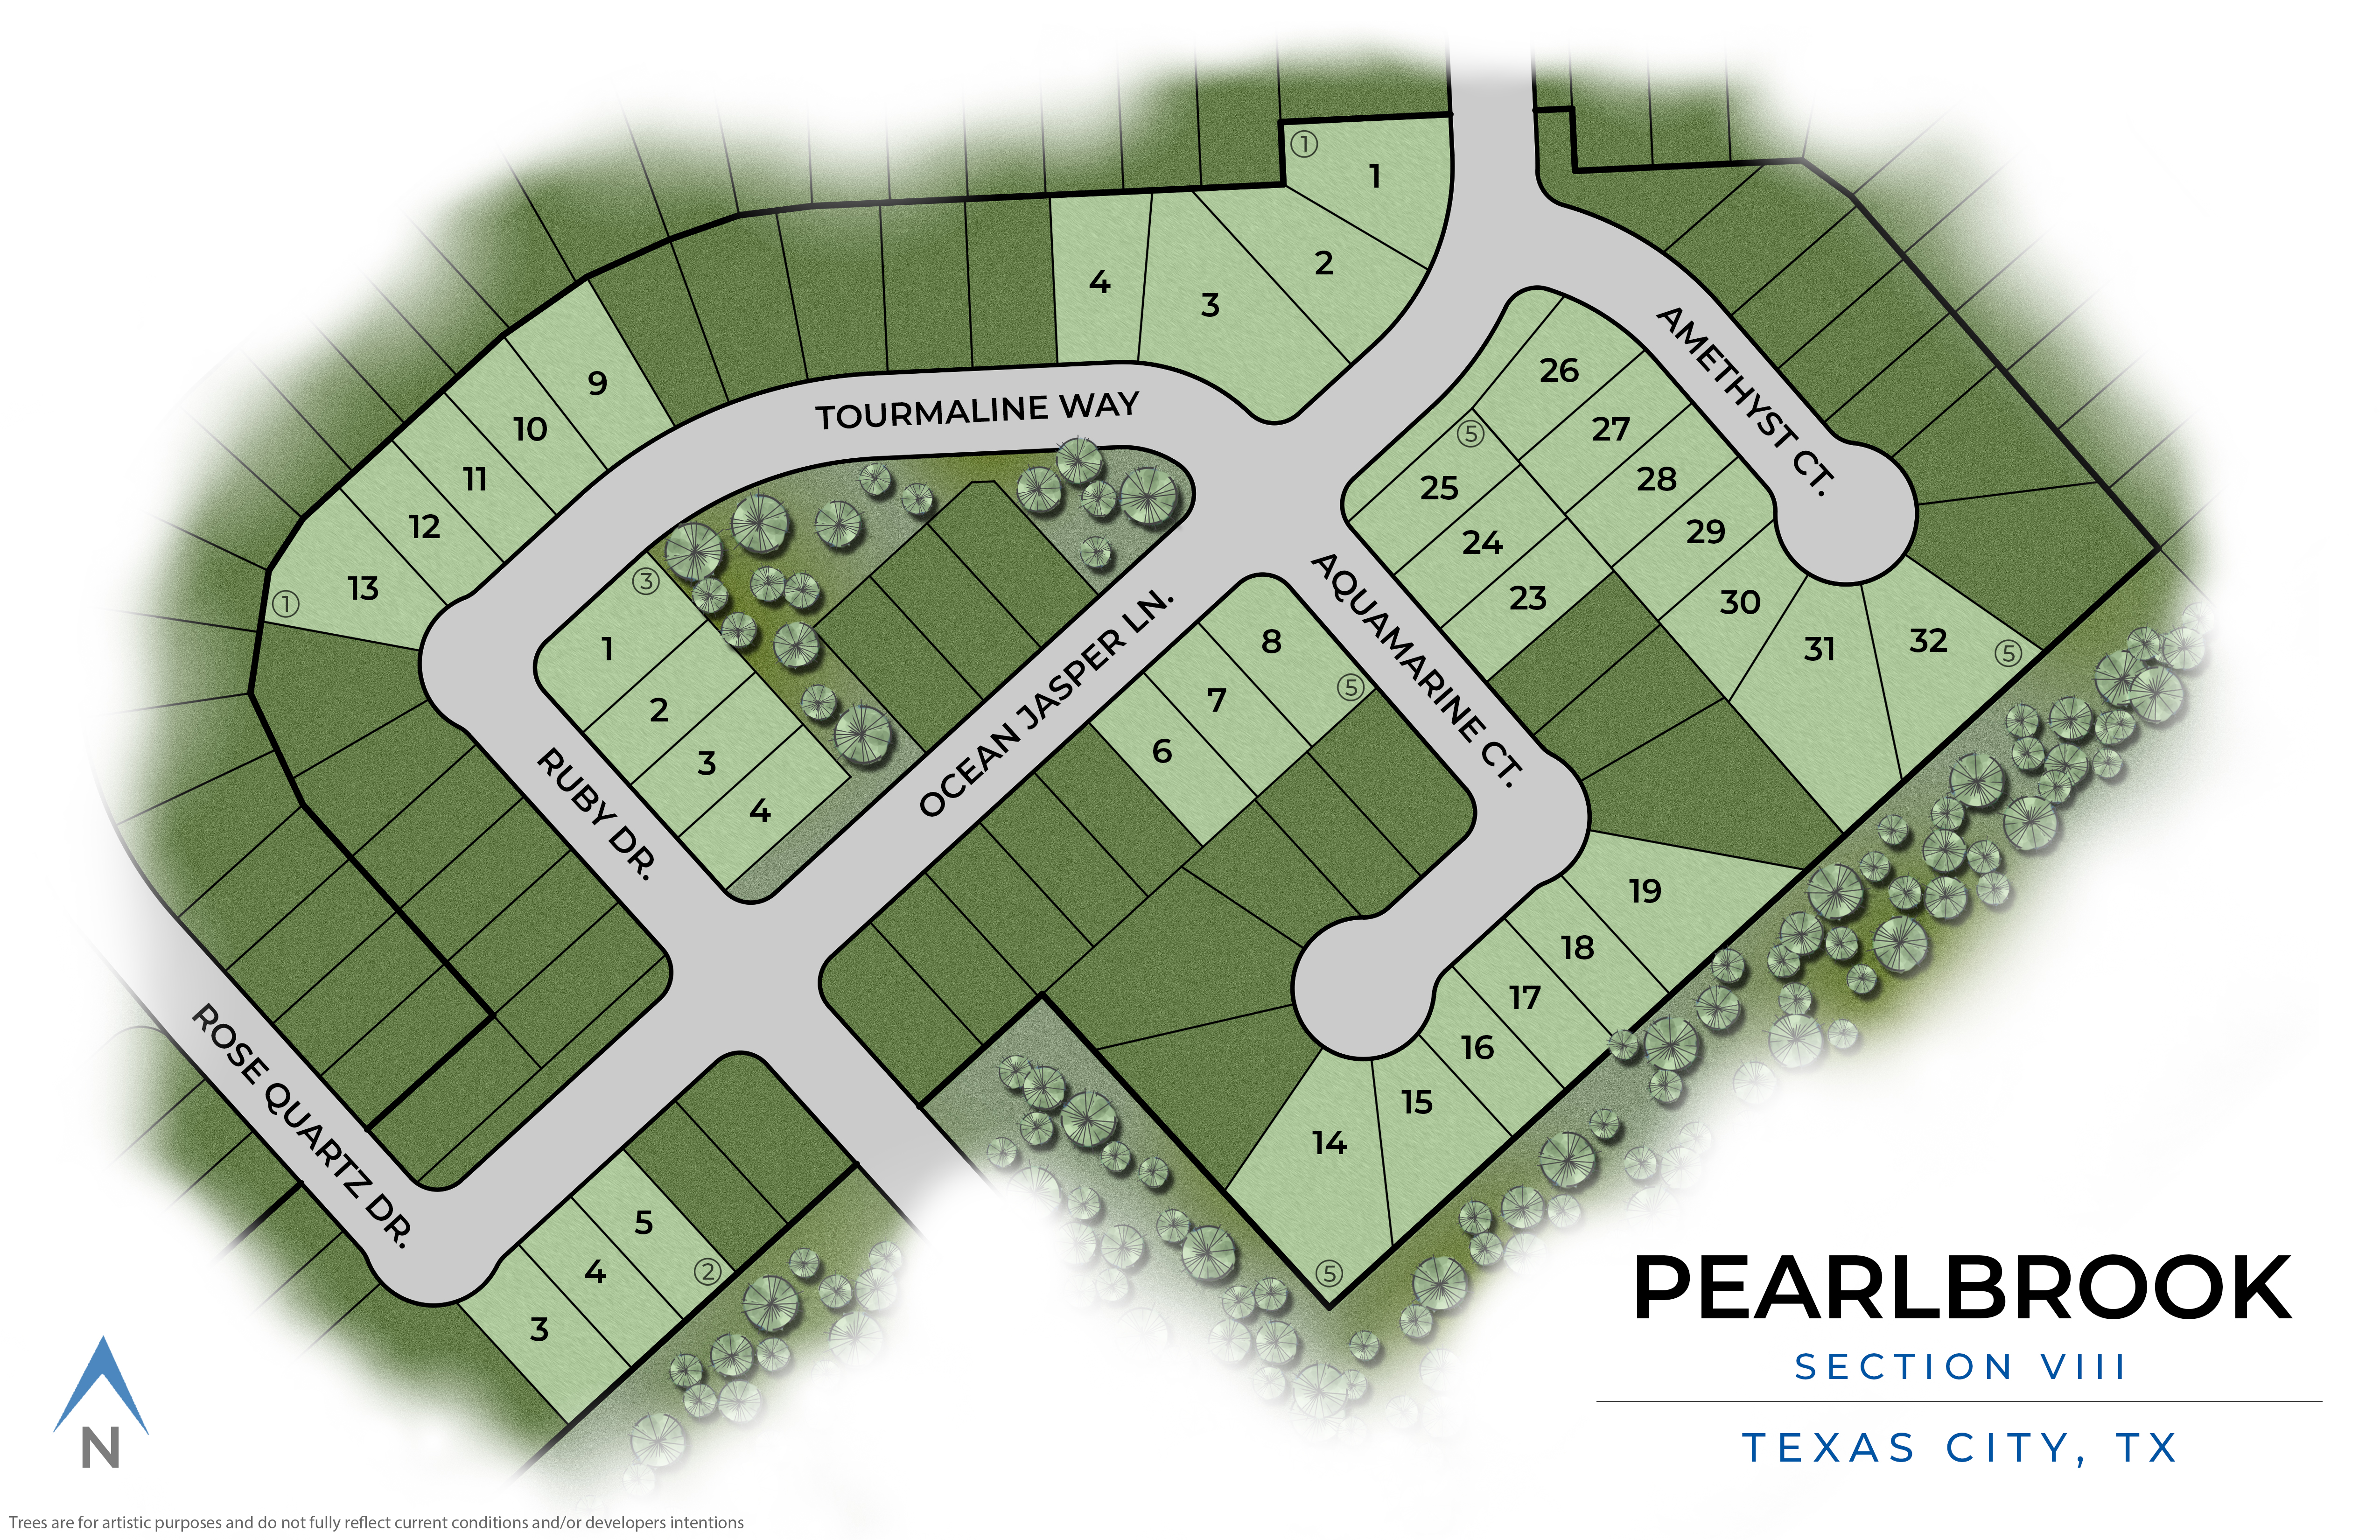 Texas City, TX Pearlbrook New Homes from Stylecraft Builders